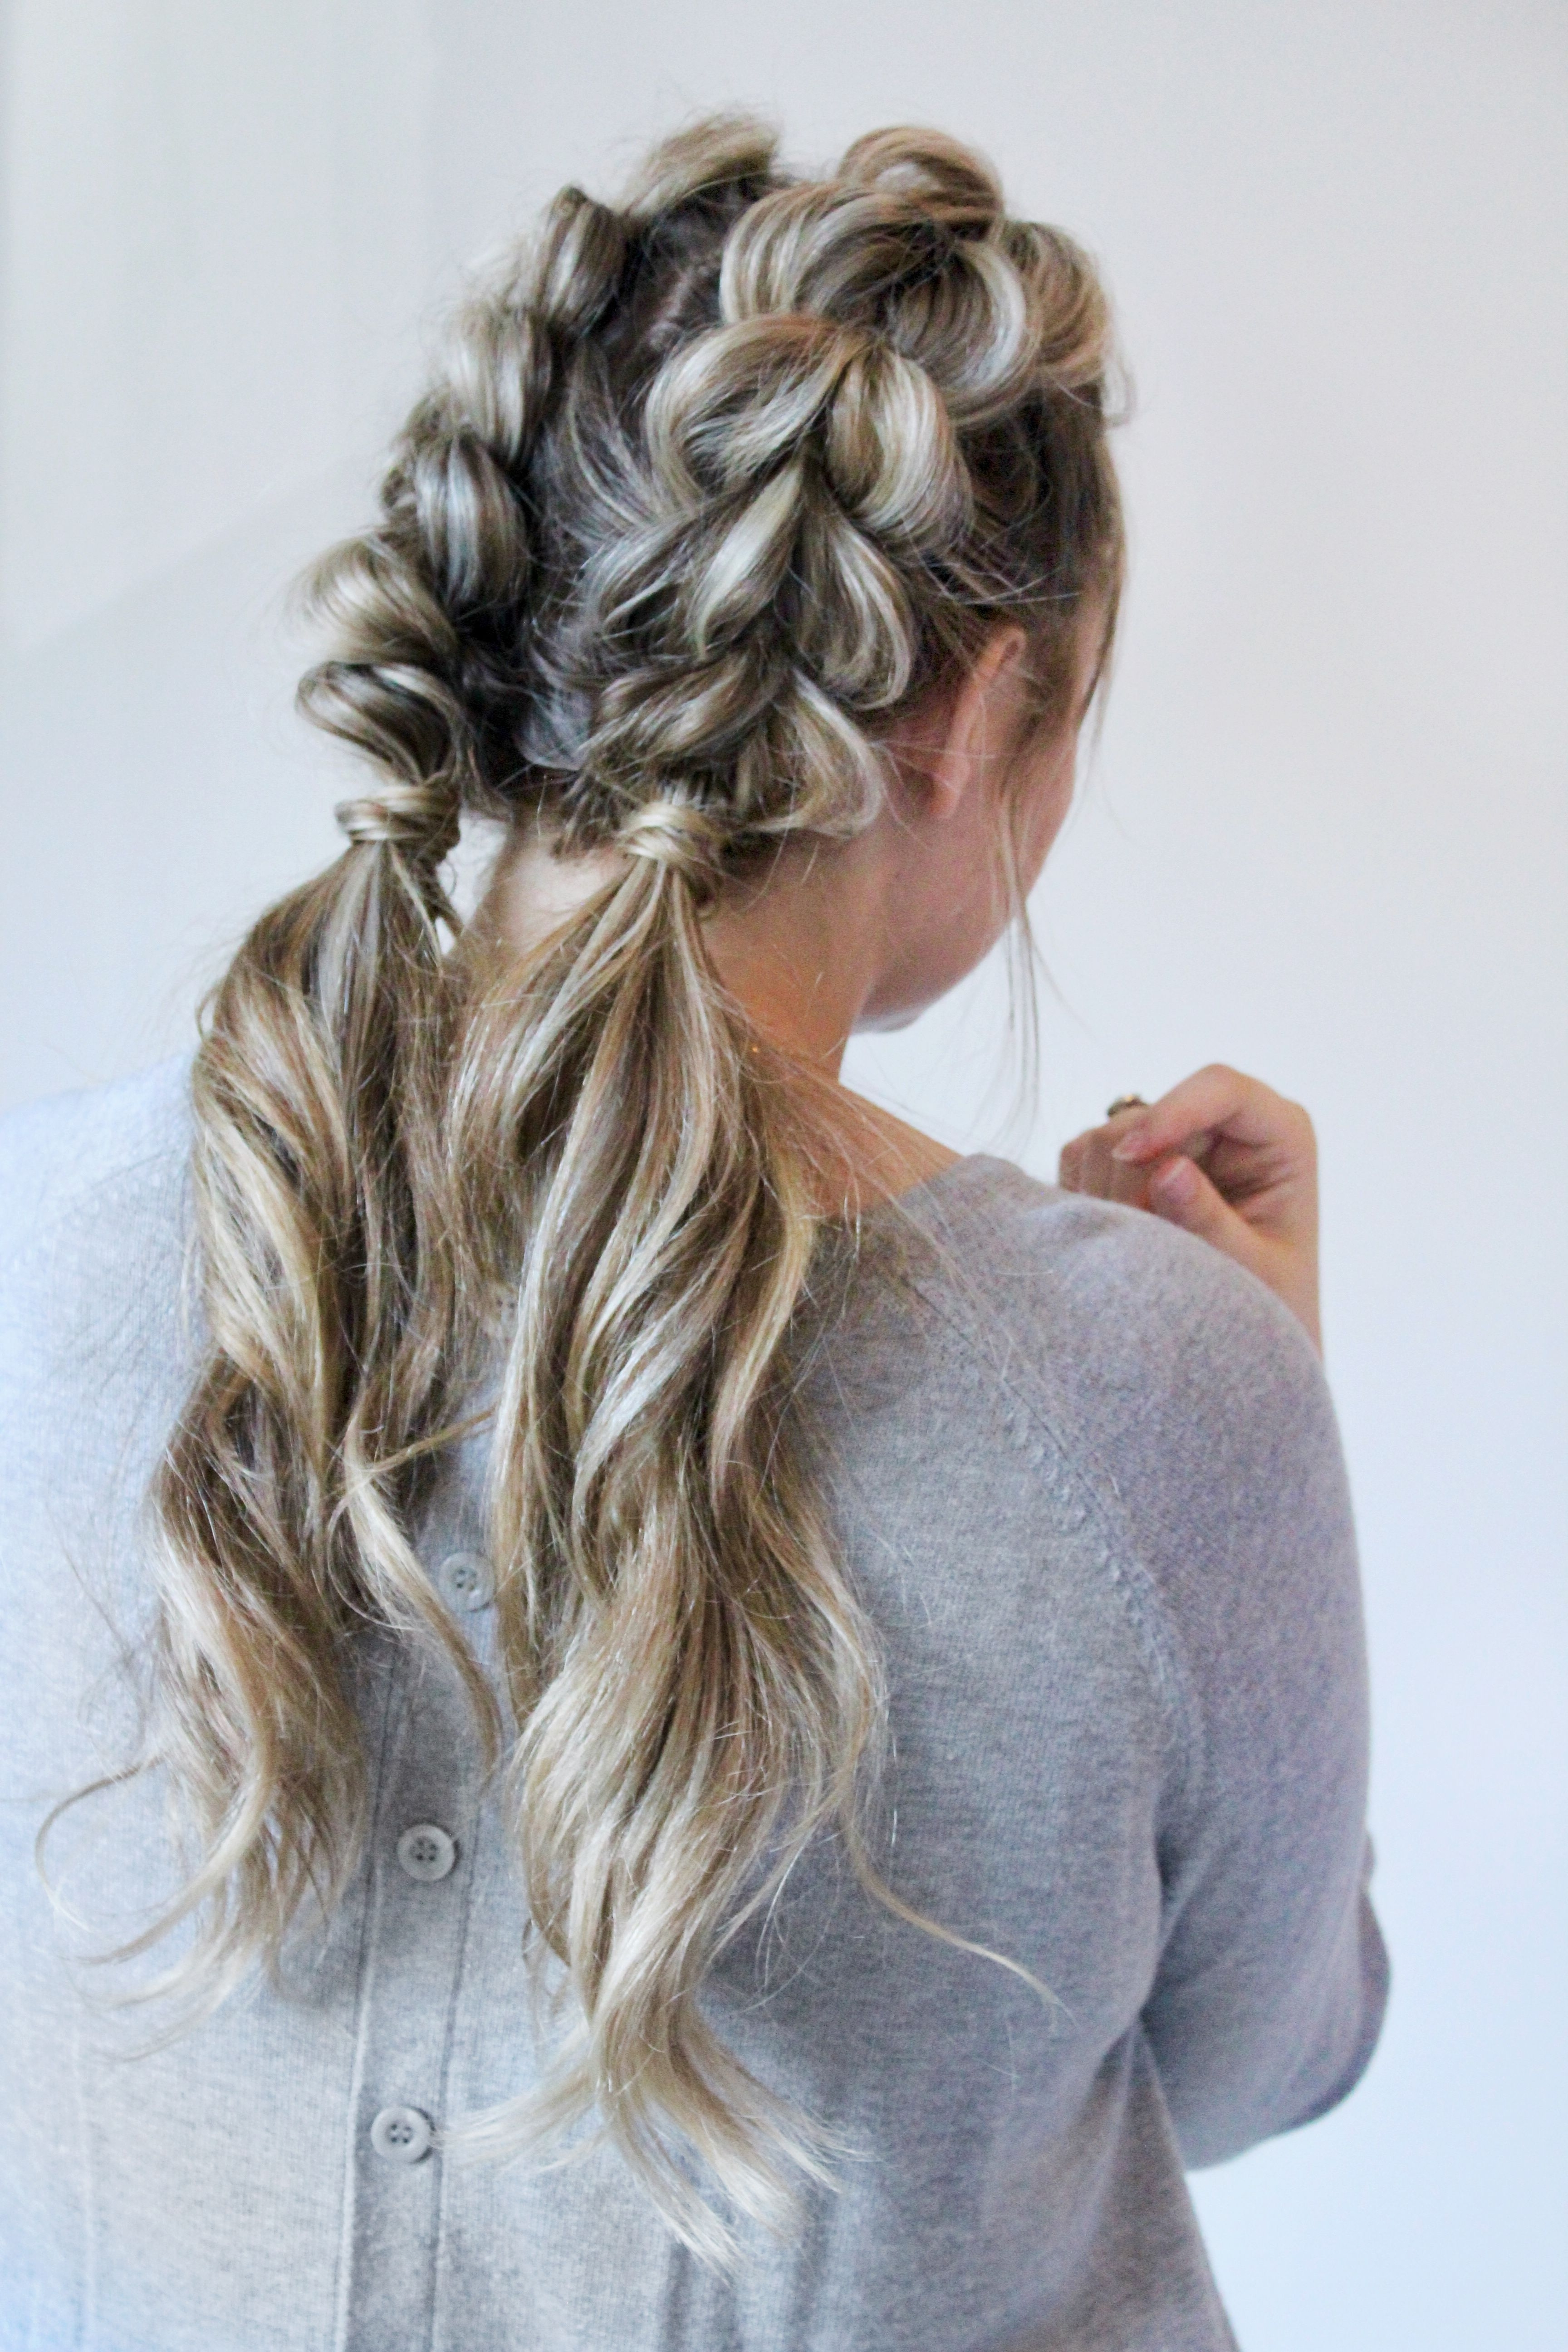 Jumbo Pull Through Braid Pigtails Tutorial (Gallery 10 of 20)